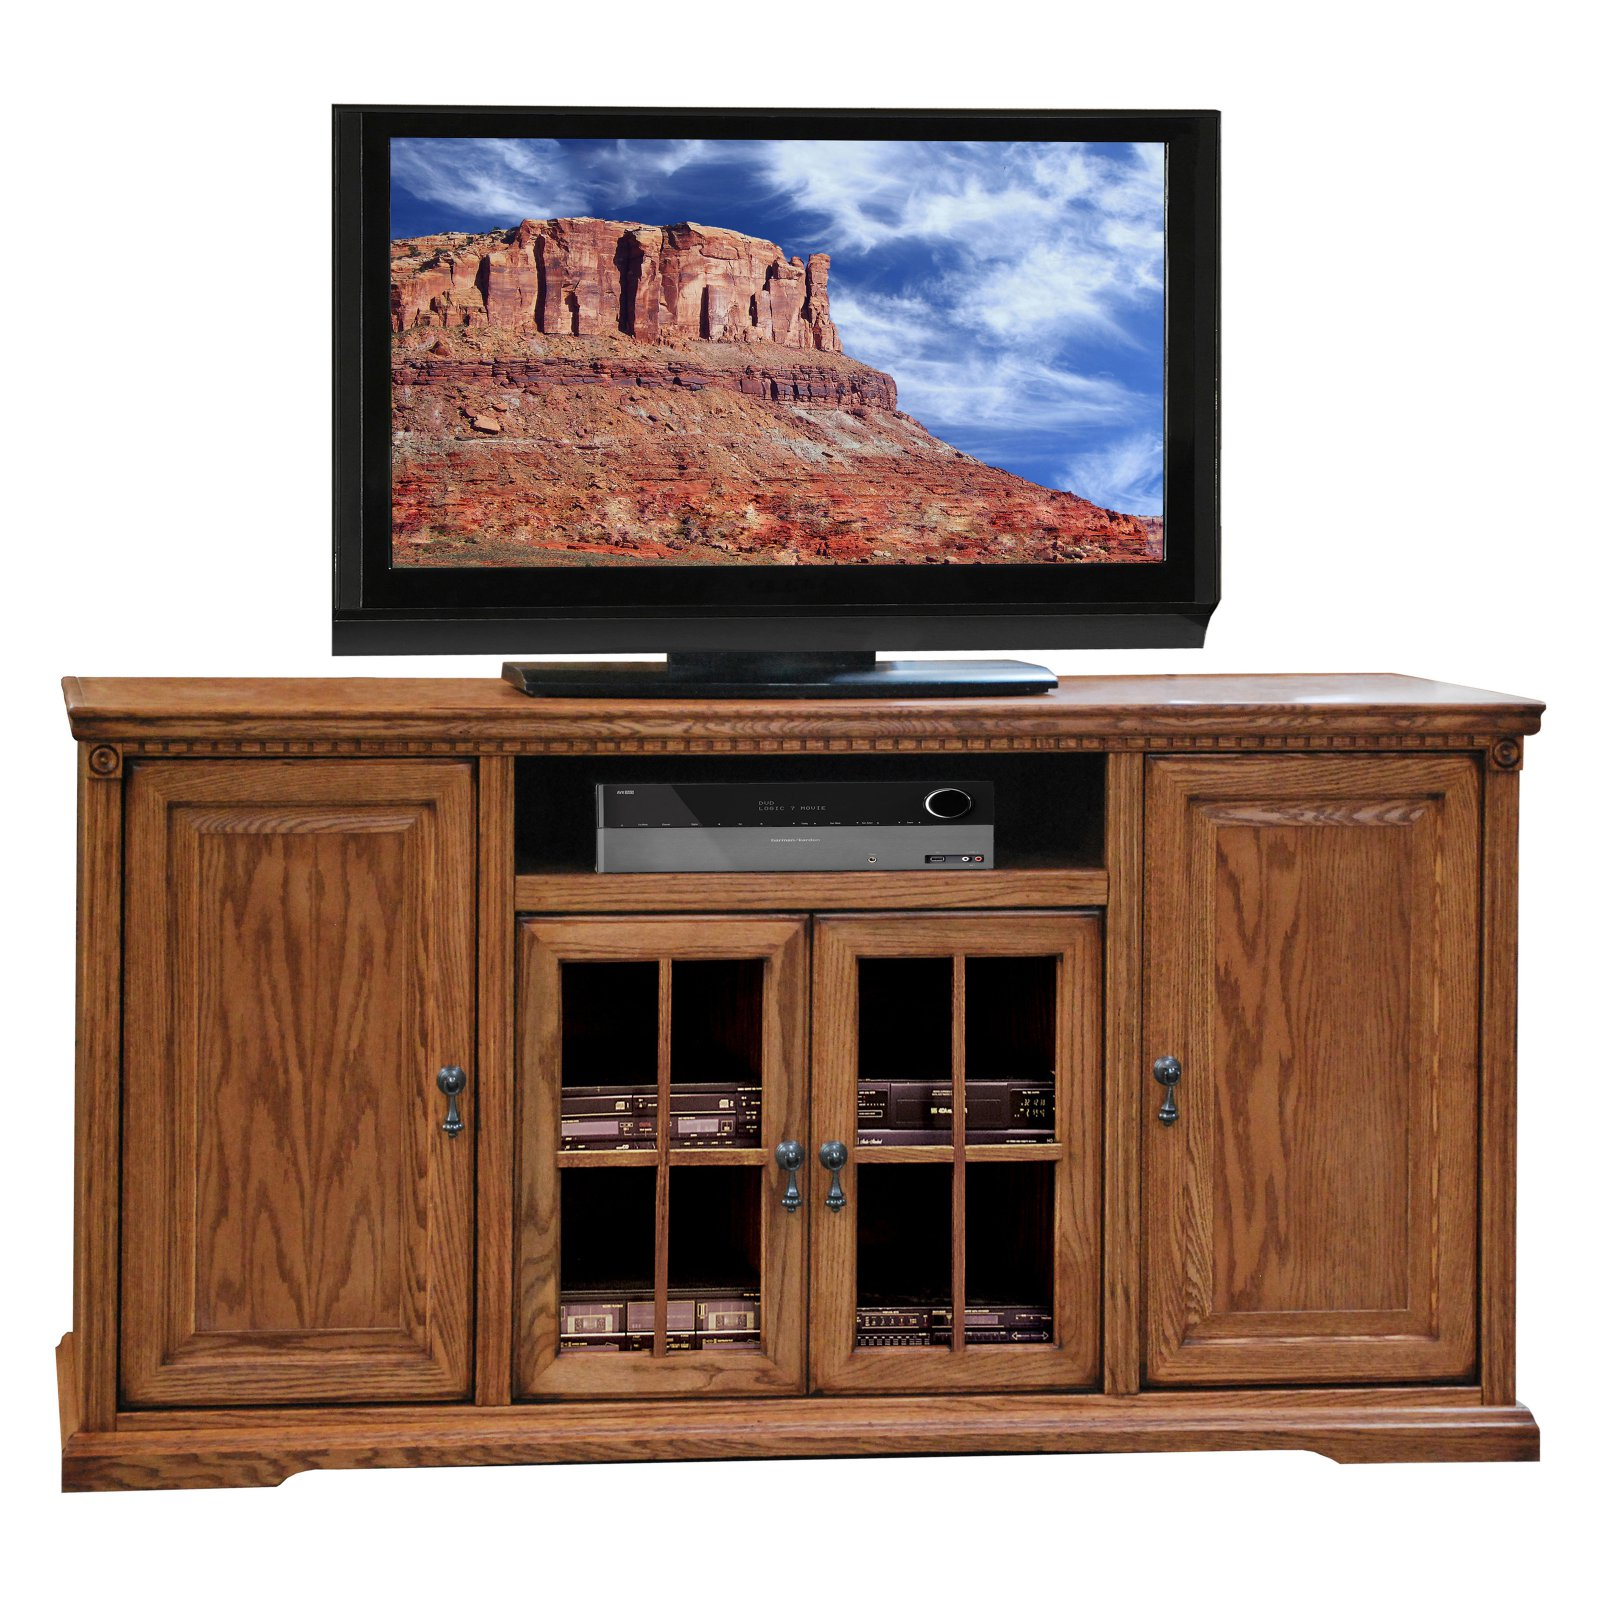 Legends Scottsdale 64 in. TV Console - Rustique